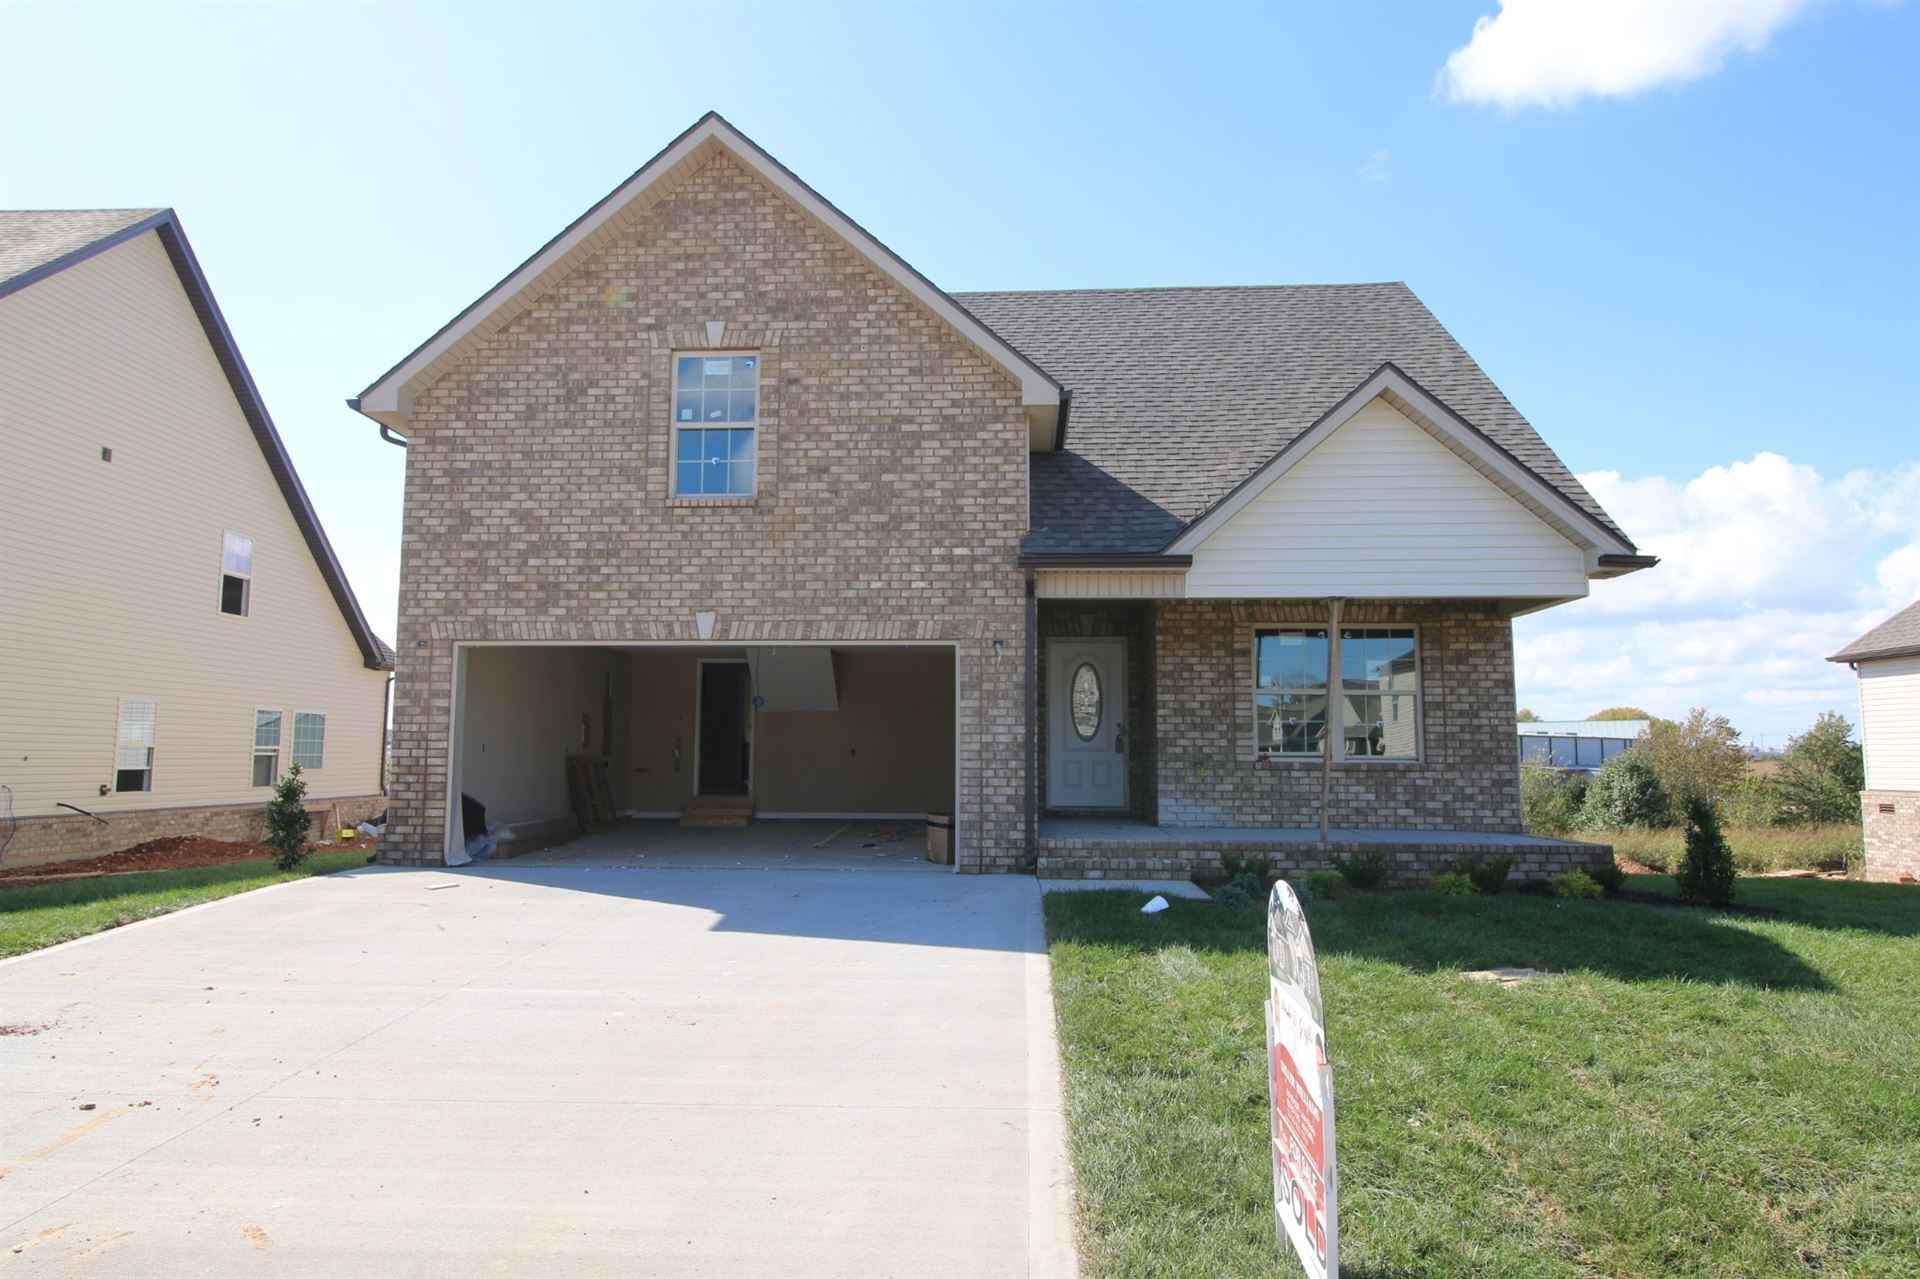 5 Reserve at Hickory Wild, Clarksville, TN 37043 - MLS#: 2178728